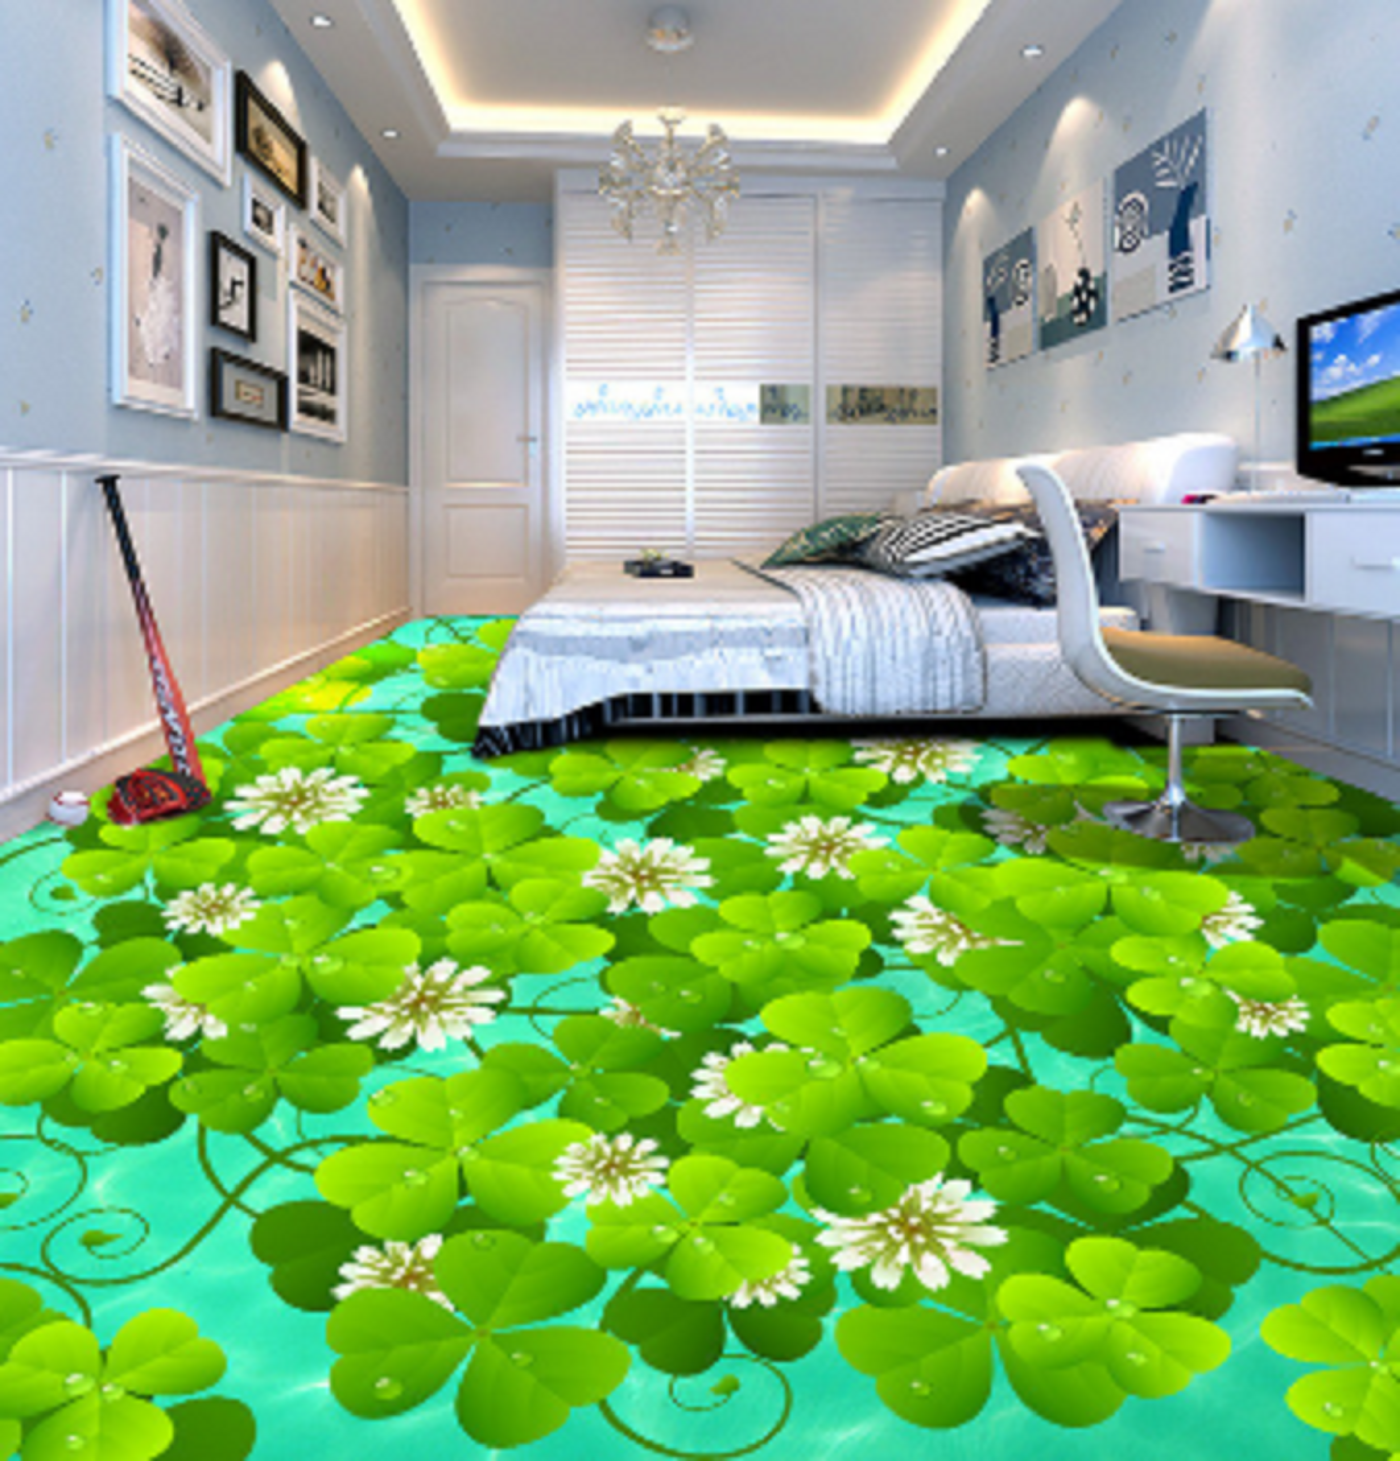 3D Petals Grün Leaf 784 Floor WallPaper Murals Wall Print Decal AJ WALLPAPER US